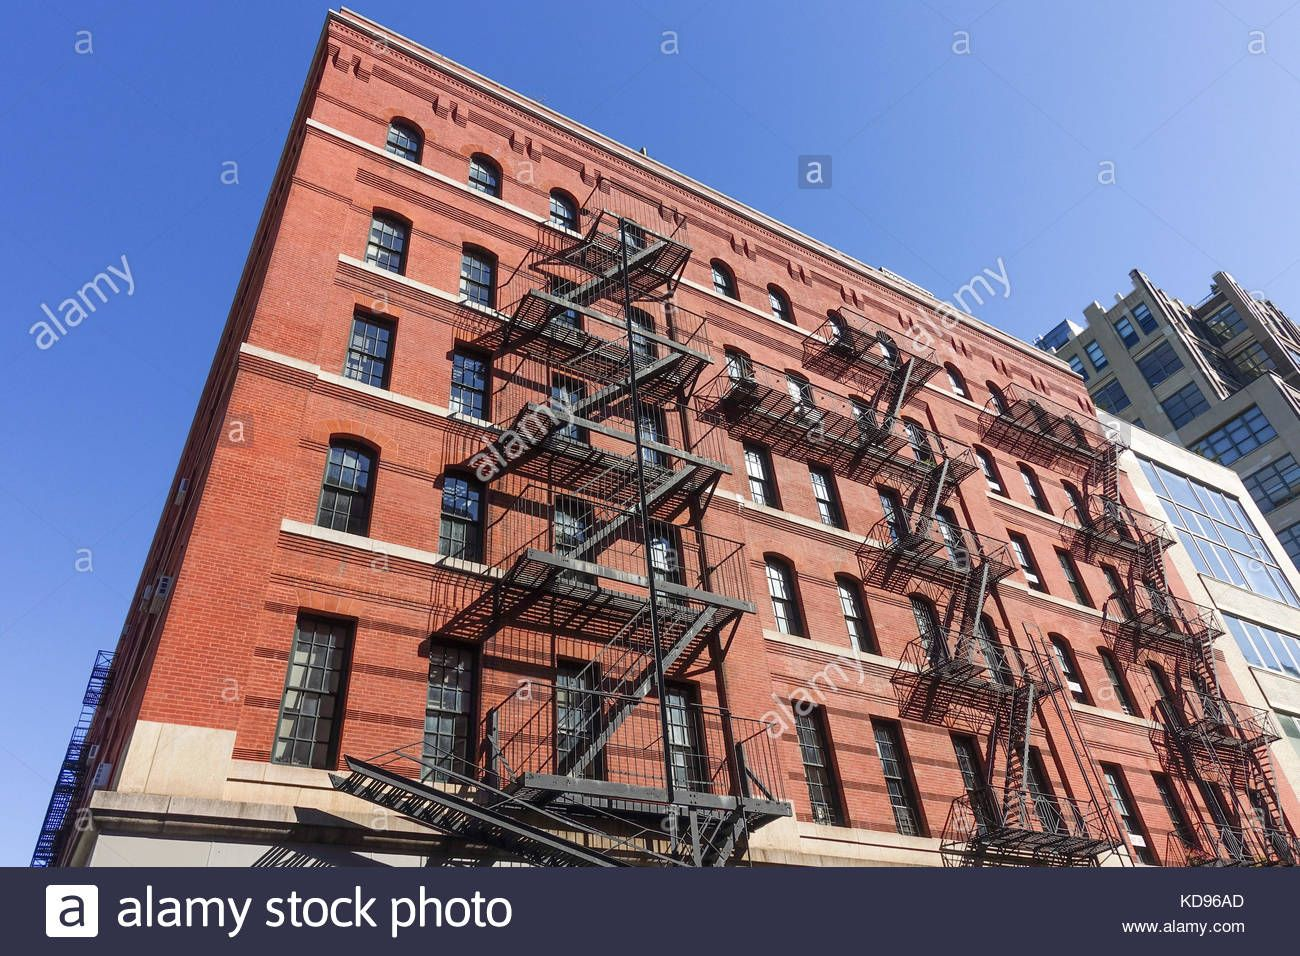 Download This Stock Image New York Building Facade Of Brick